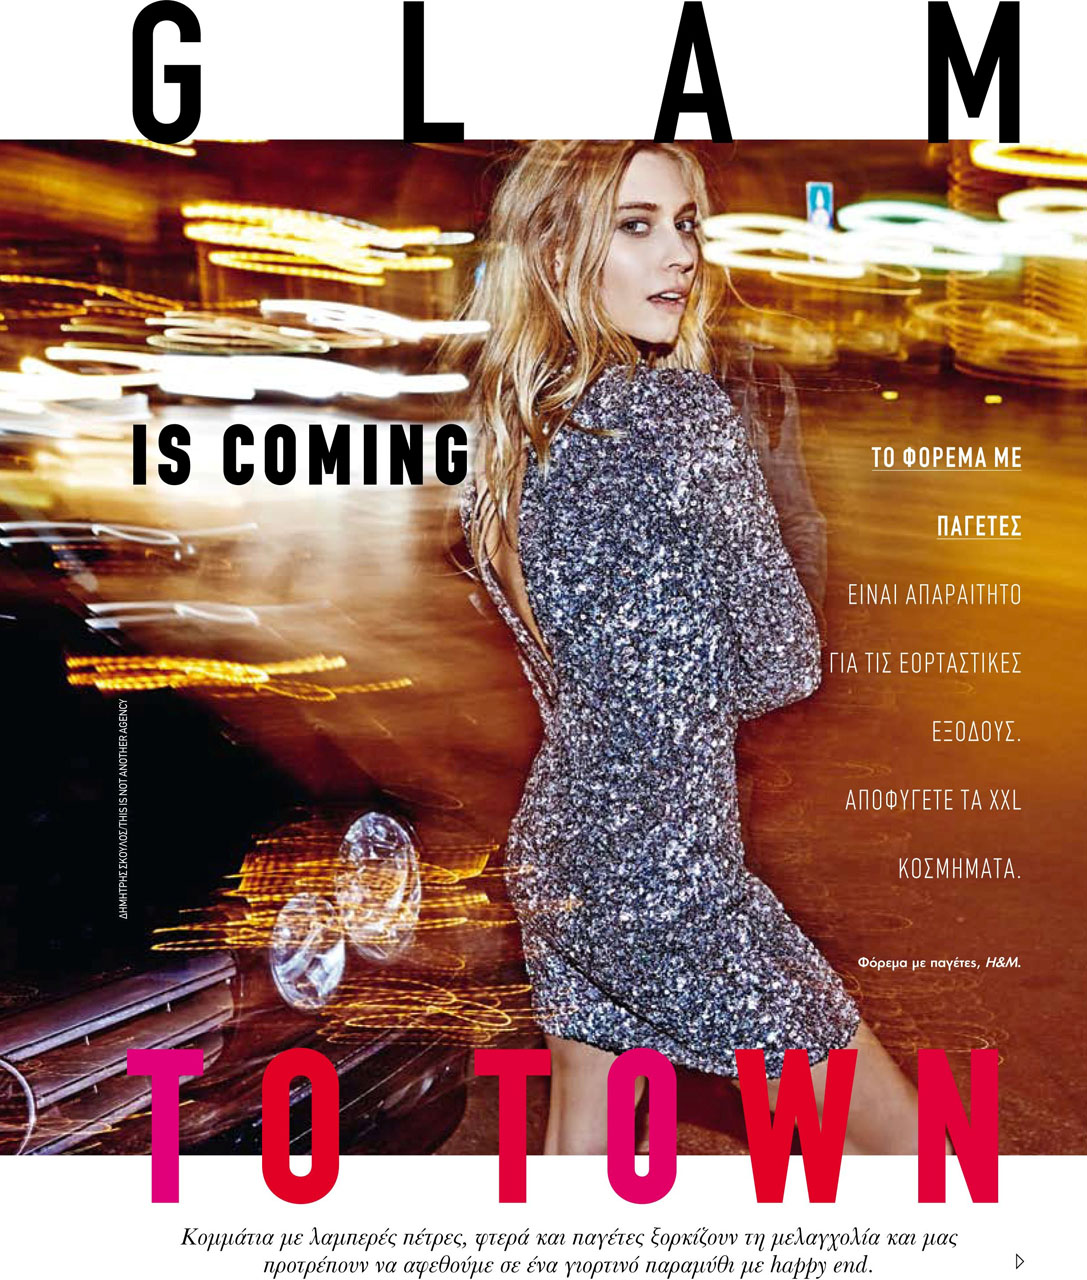 Marla Fabri brings the glam back to town for Elle.